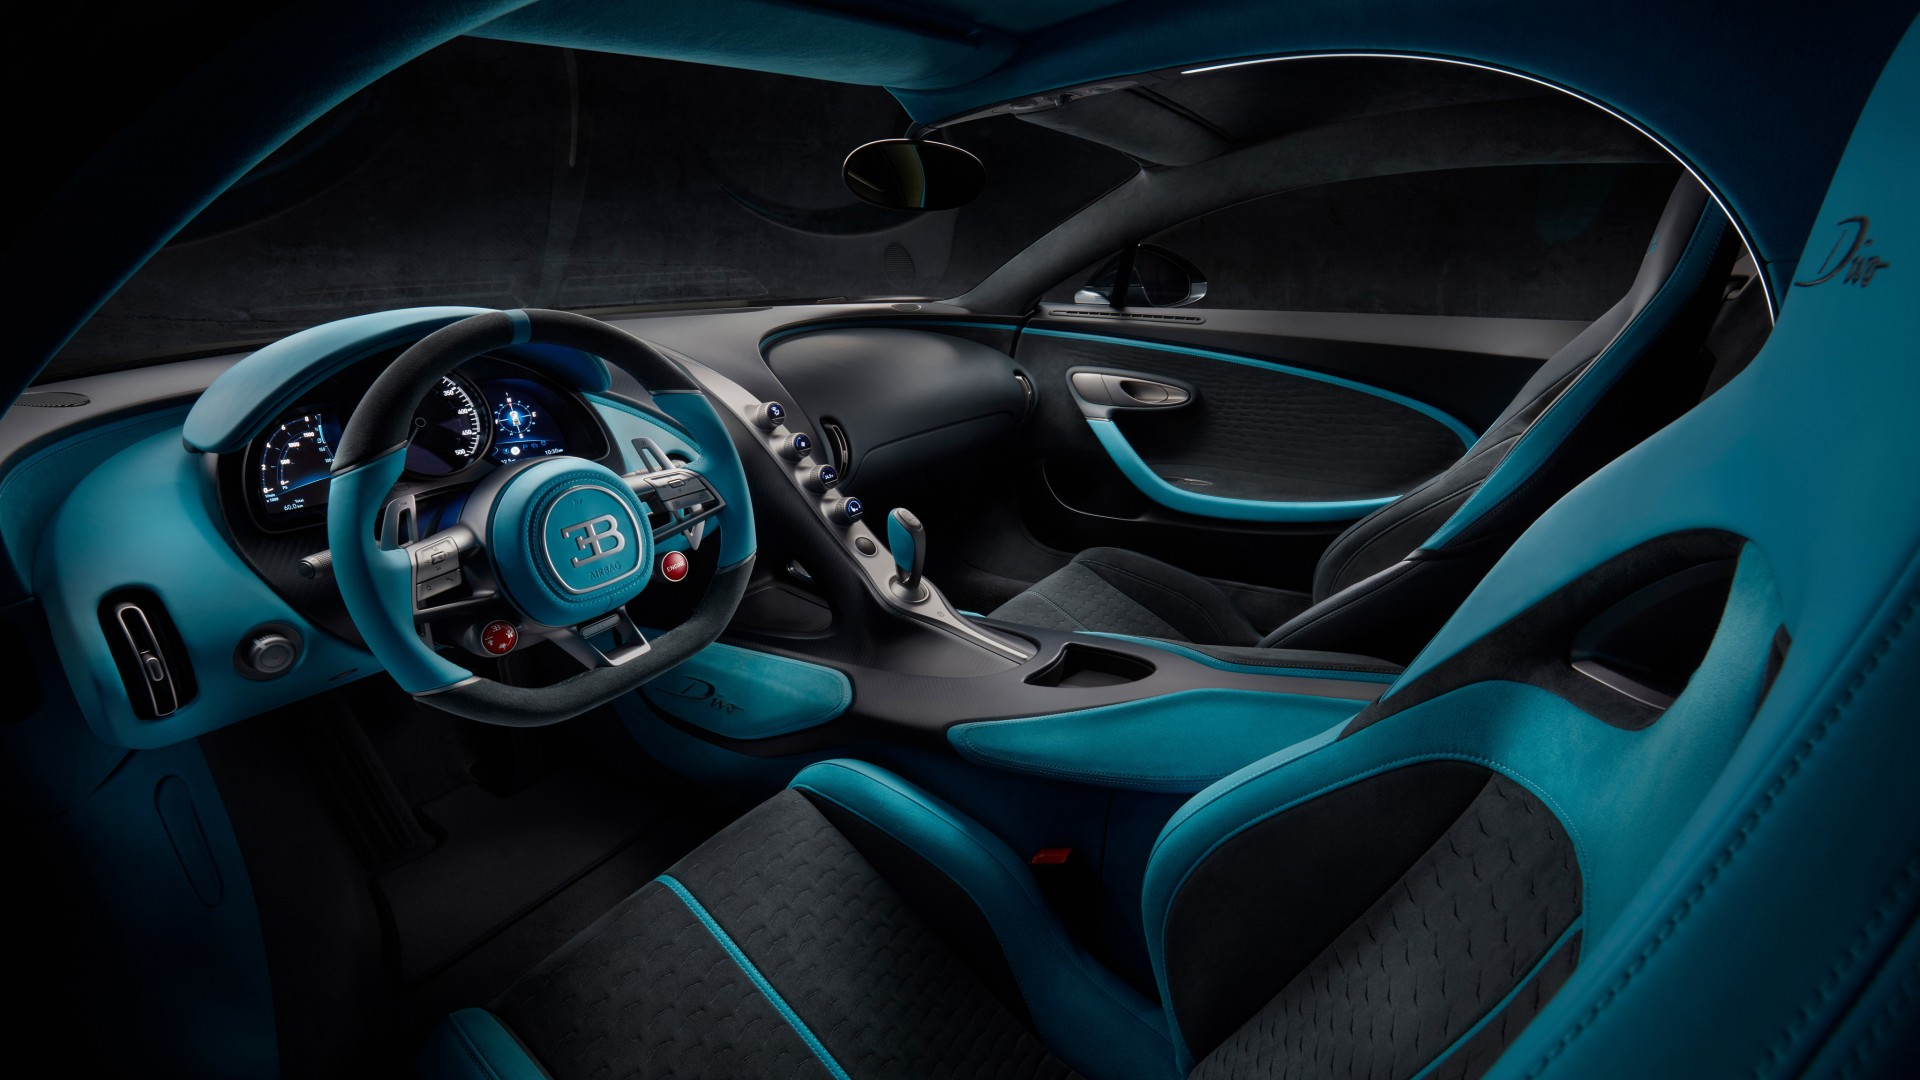 2019 Bugatti Divo Interior 4K Wallpaper | HD Car ...